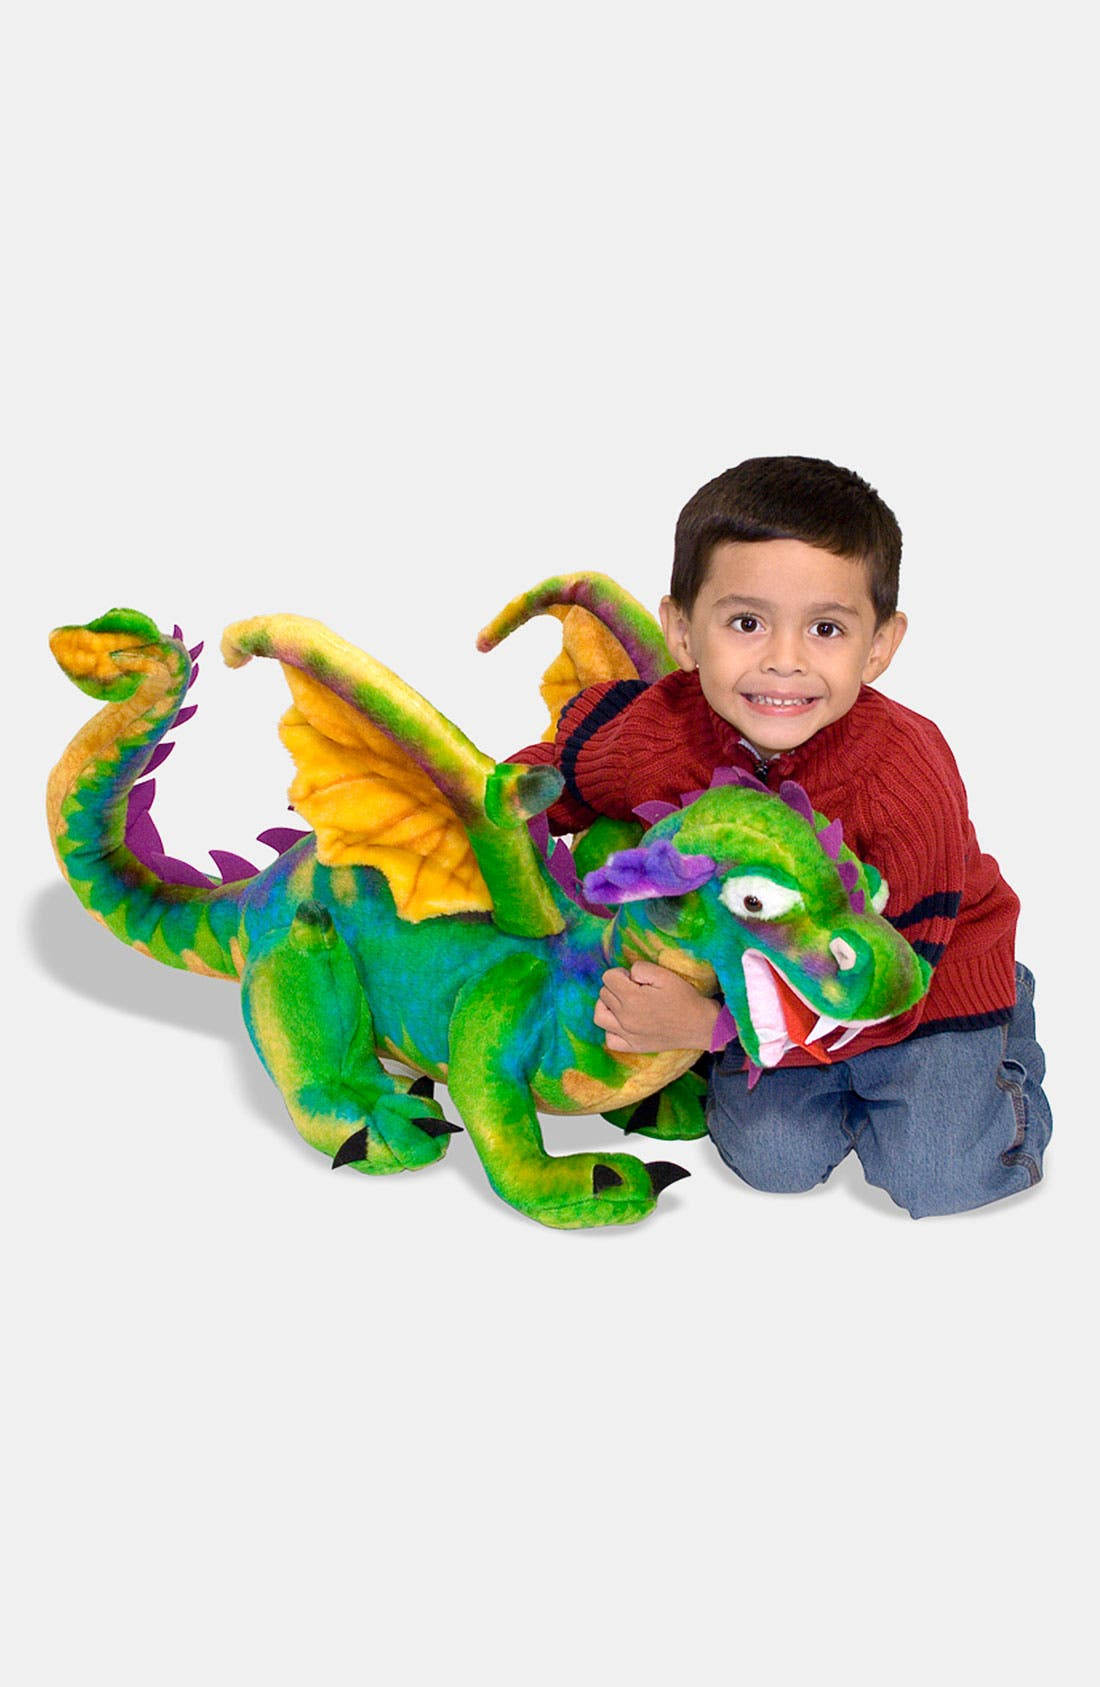 Alternate Image 1 Selected - Melissa & Doug Oversized Plush Stuffed Dragon